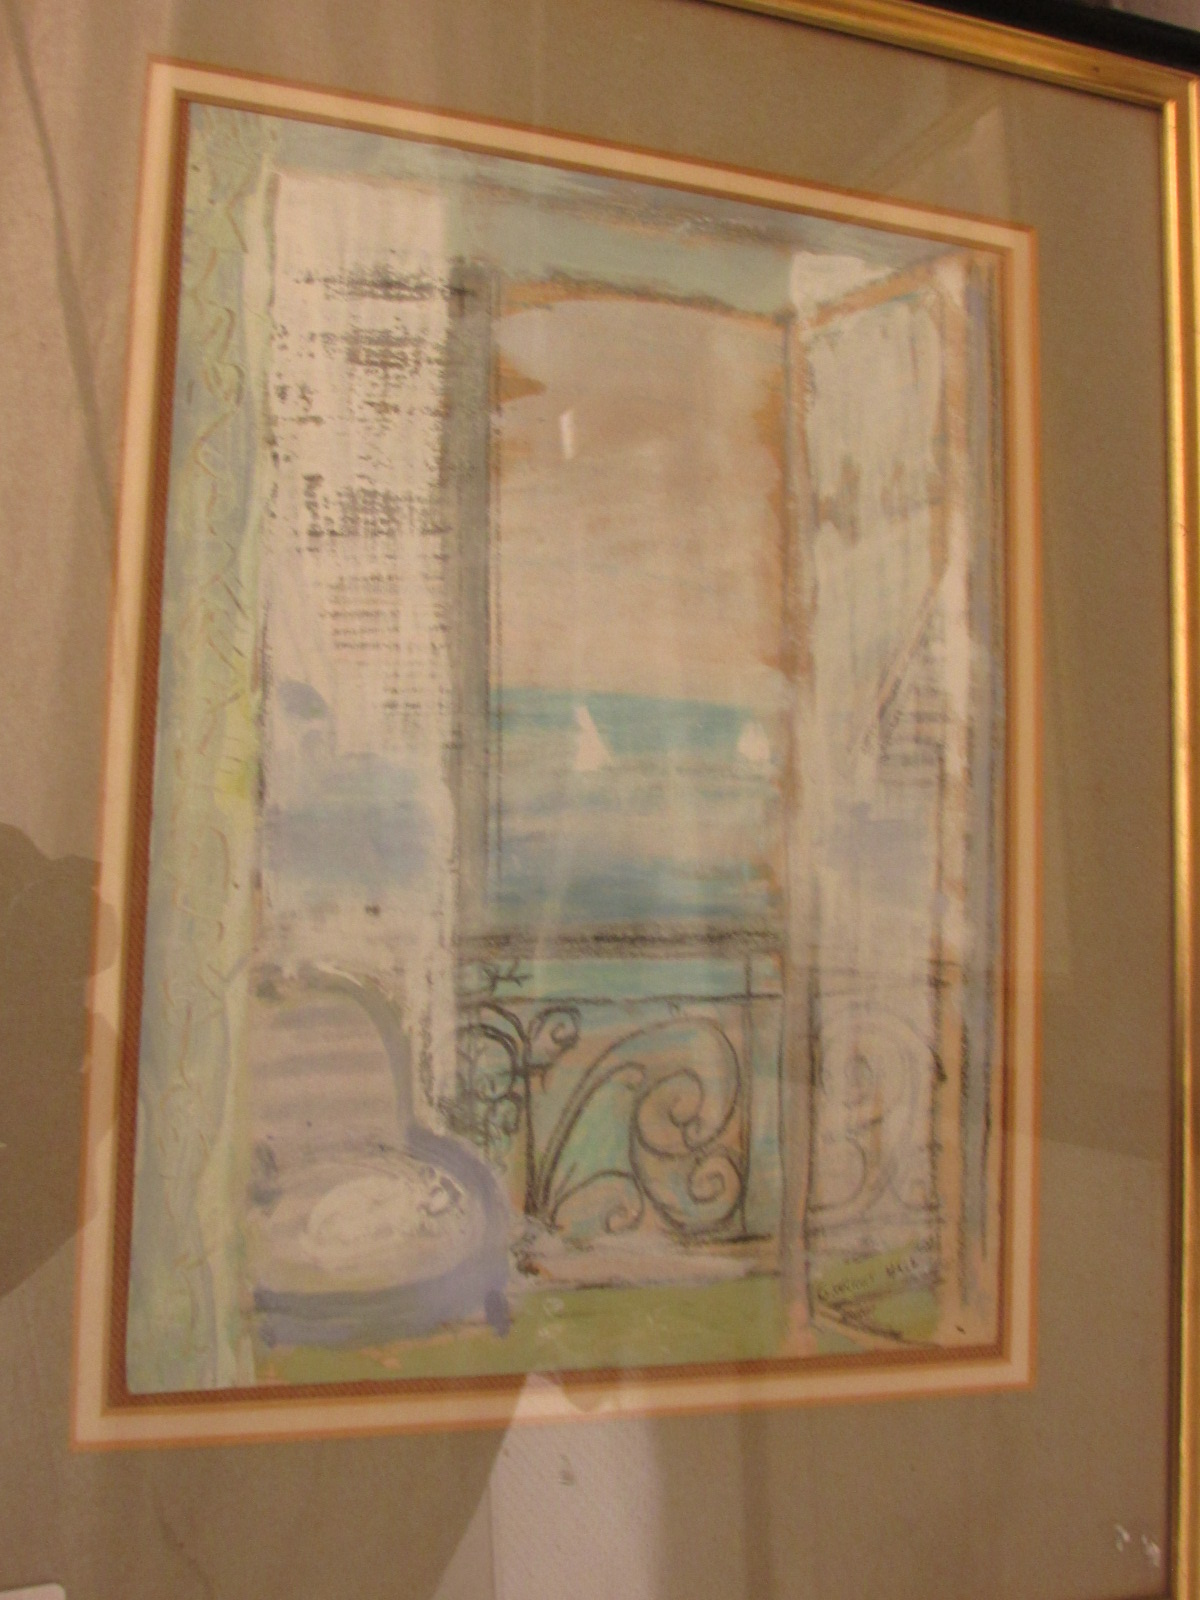 Lot 19 - 'Balcony Window', gouache and pastel, signed G. WRIGHT HALL lower right, (33.5cm x 25cm), F&G,